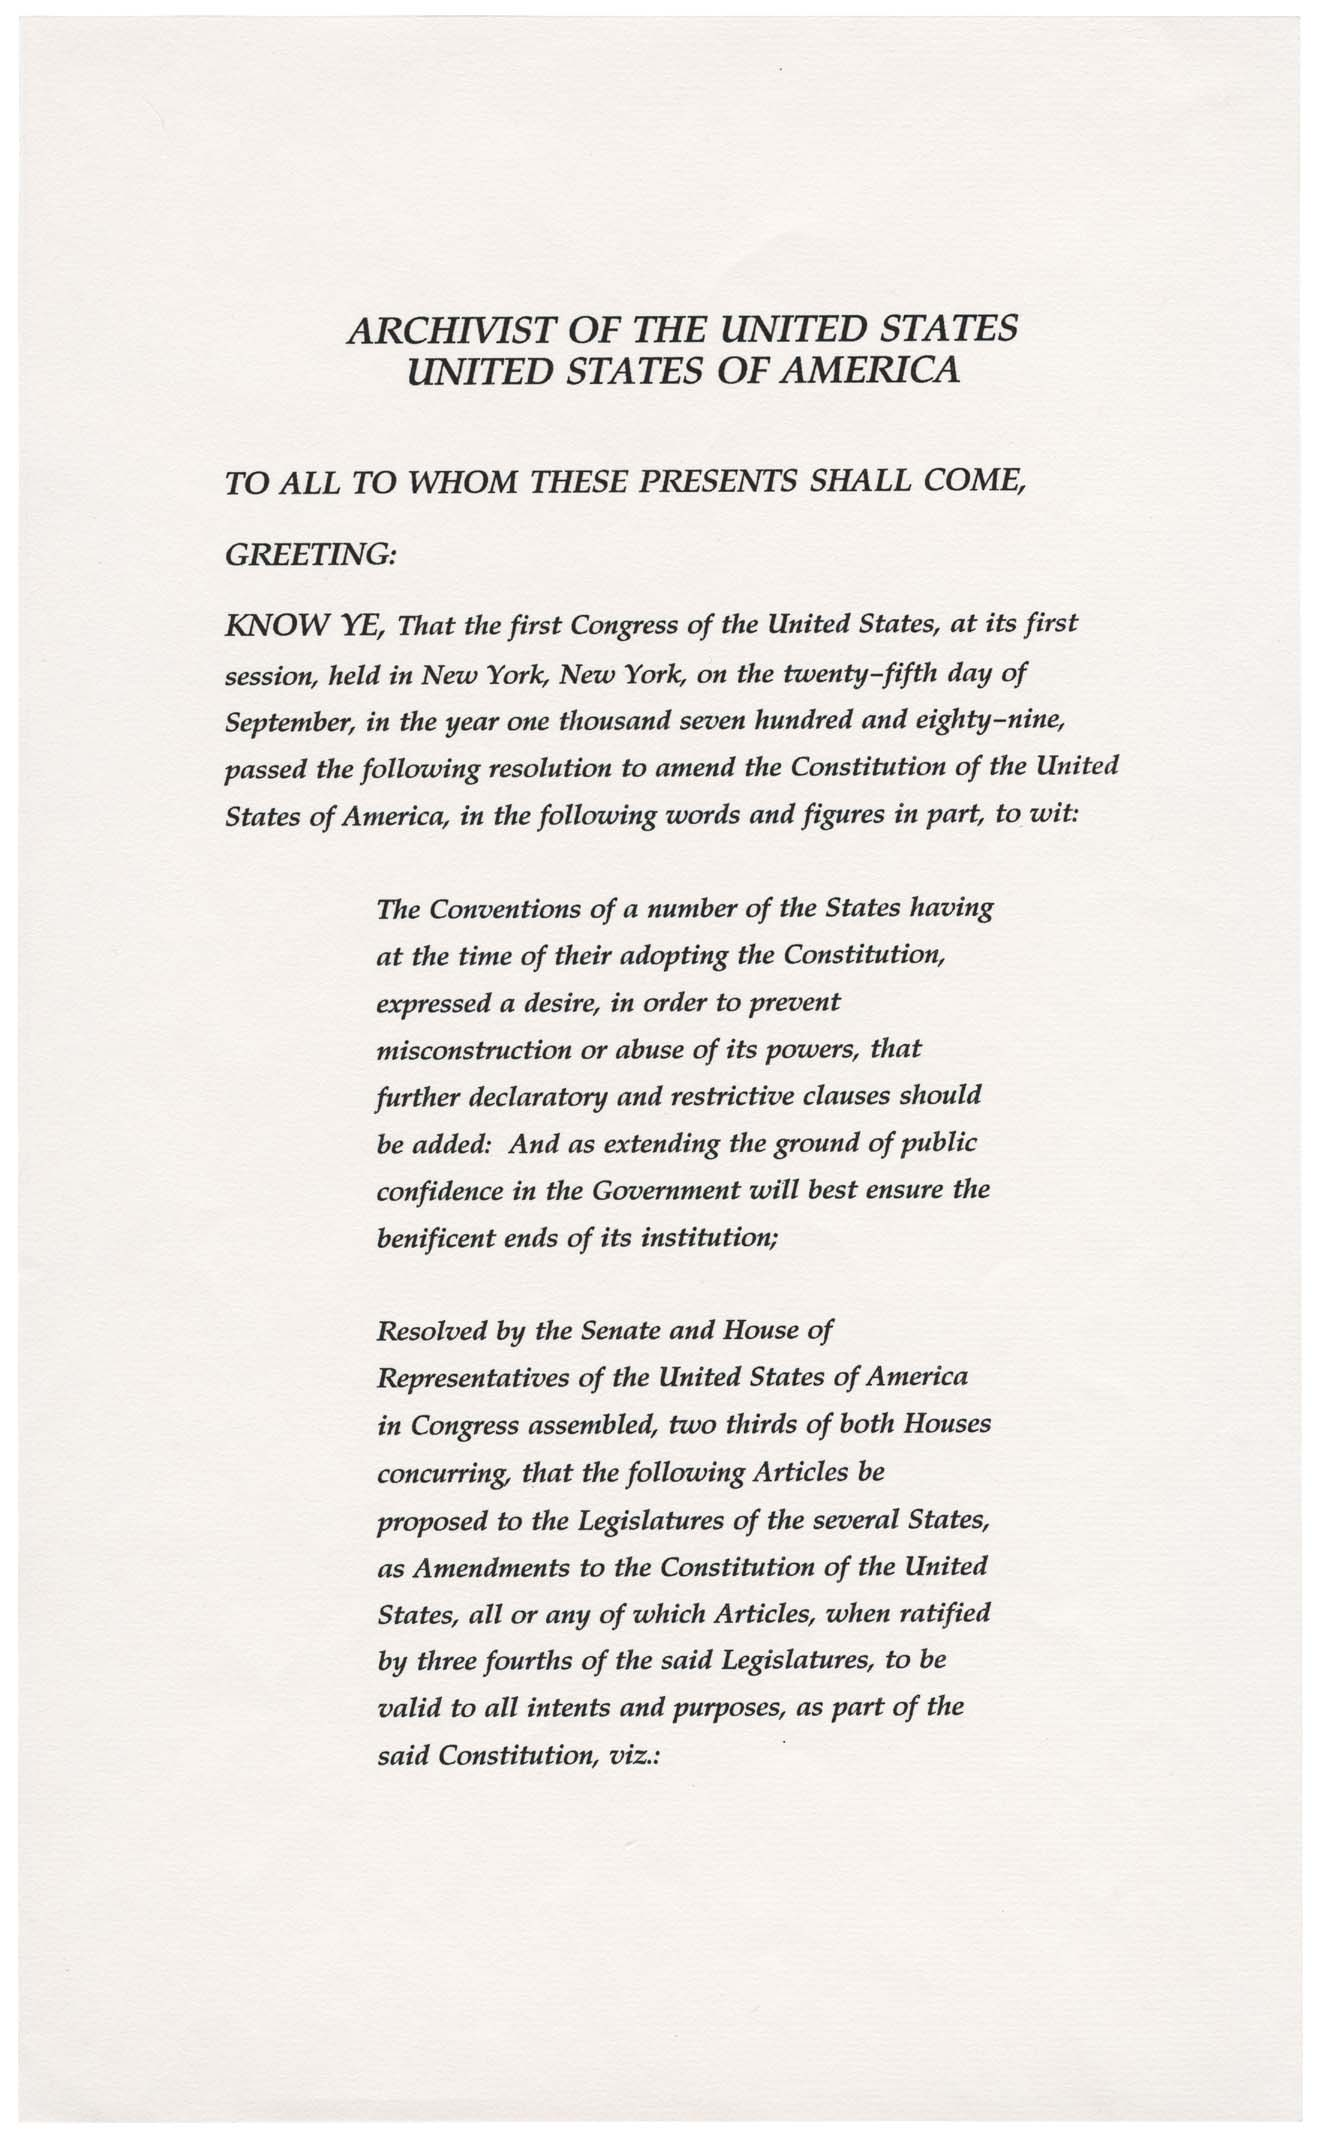 27th Amendment to the US Constitution - Page 1 of 3